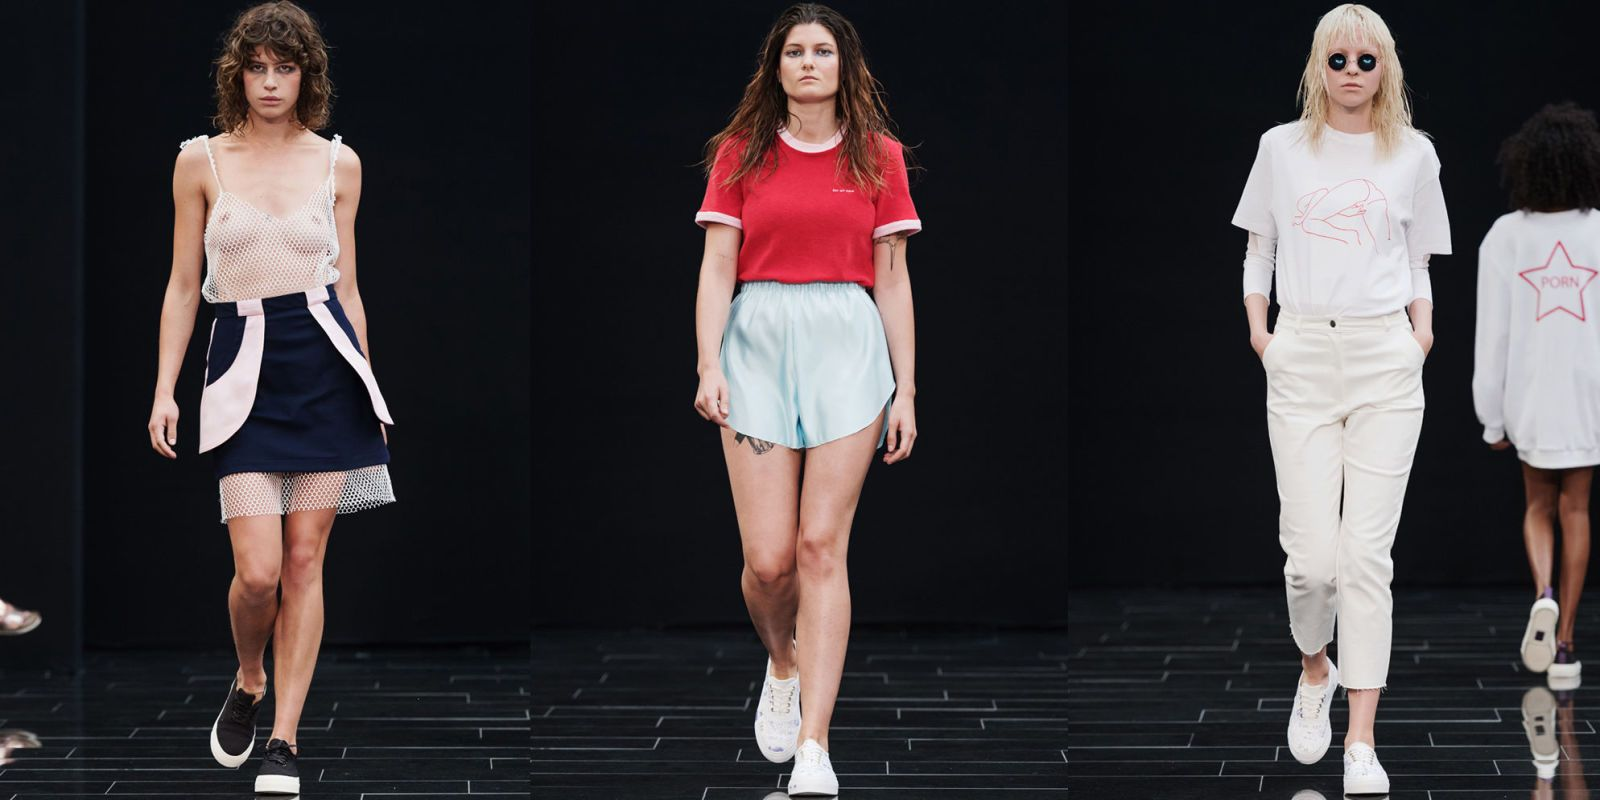 Stockholm Fashion Week Gives a Nod to Porn